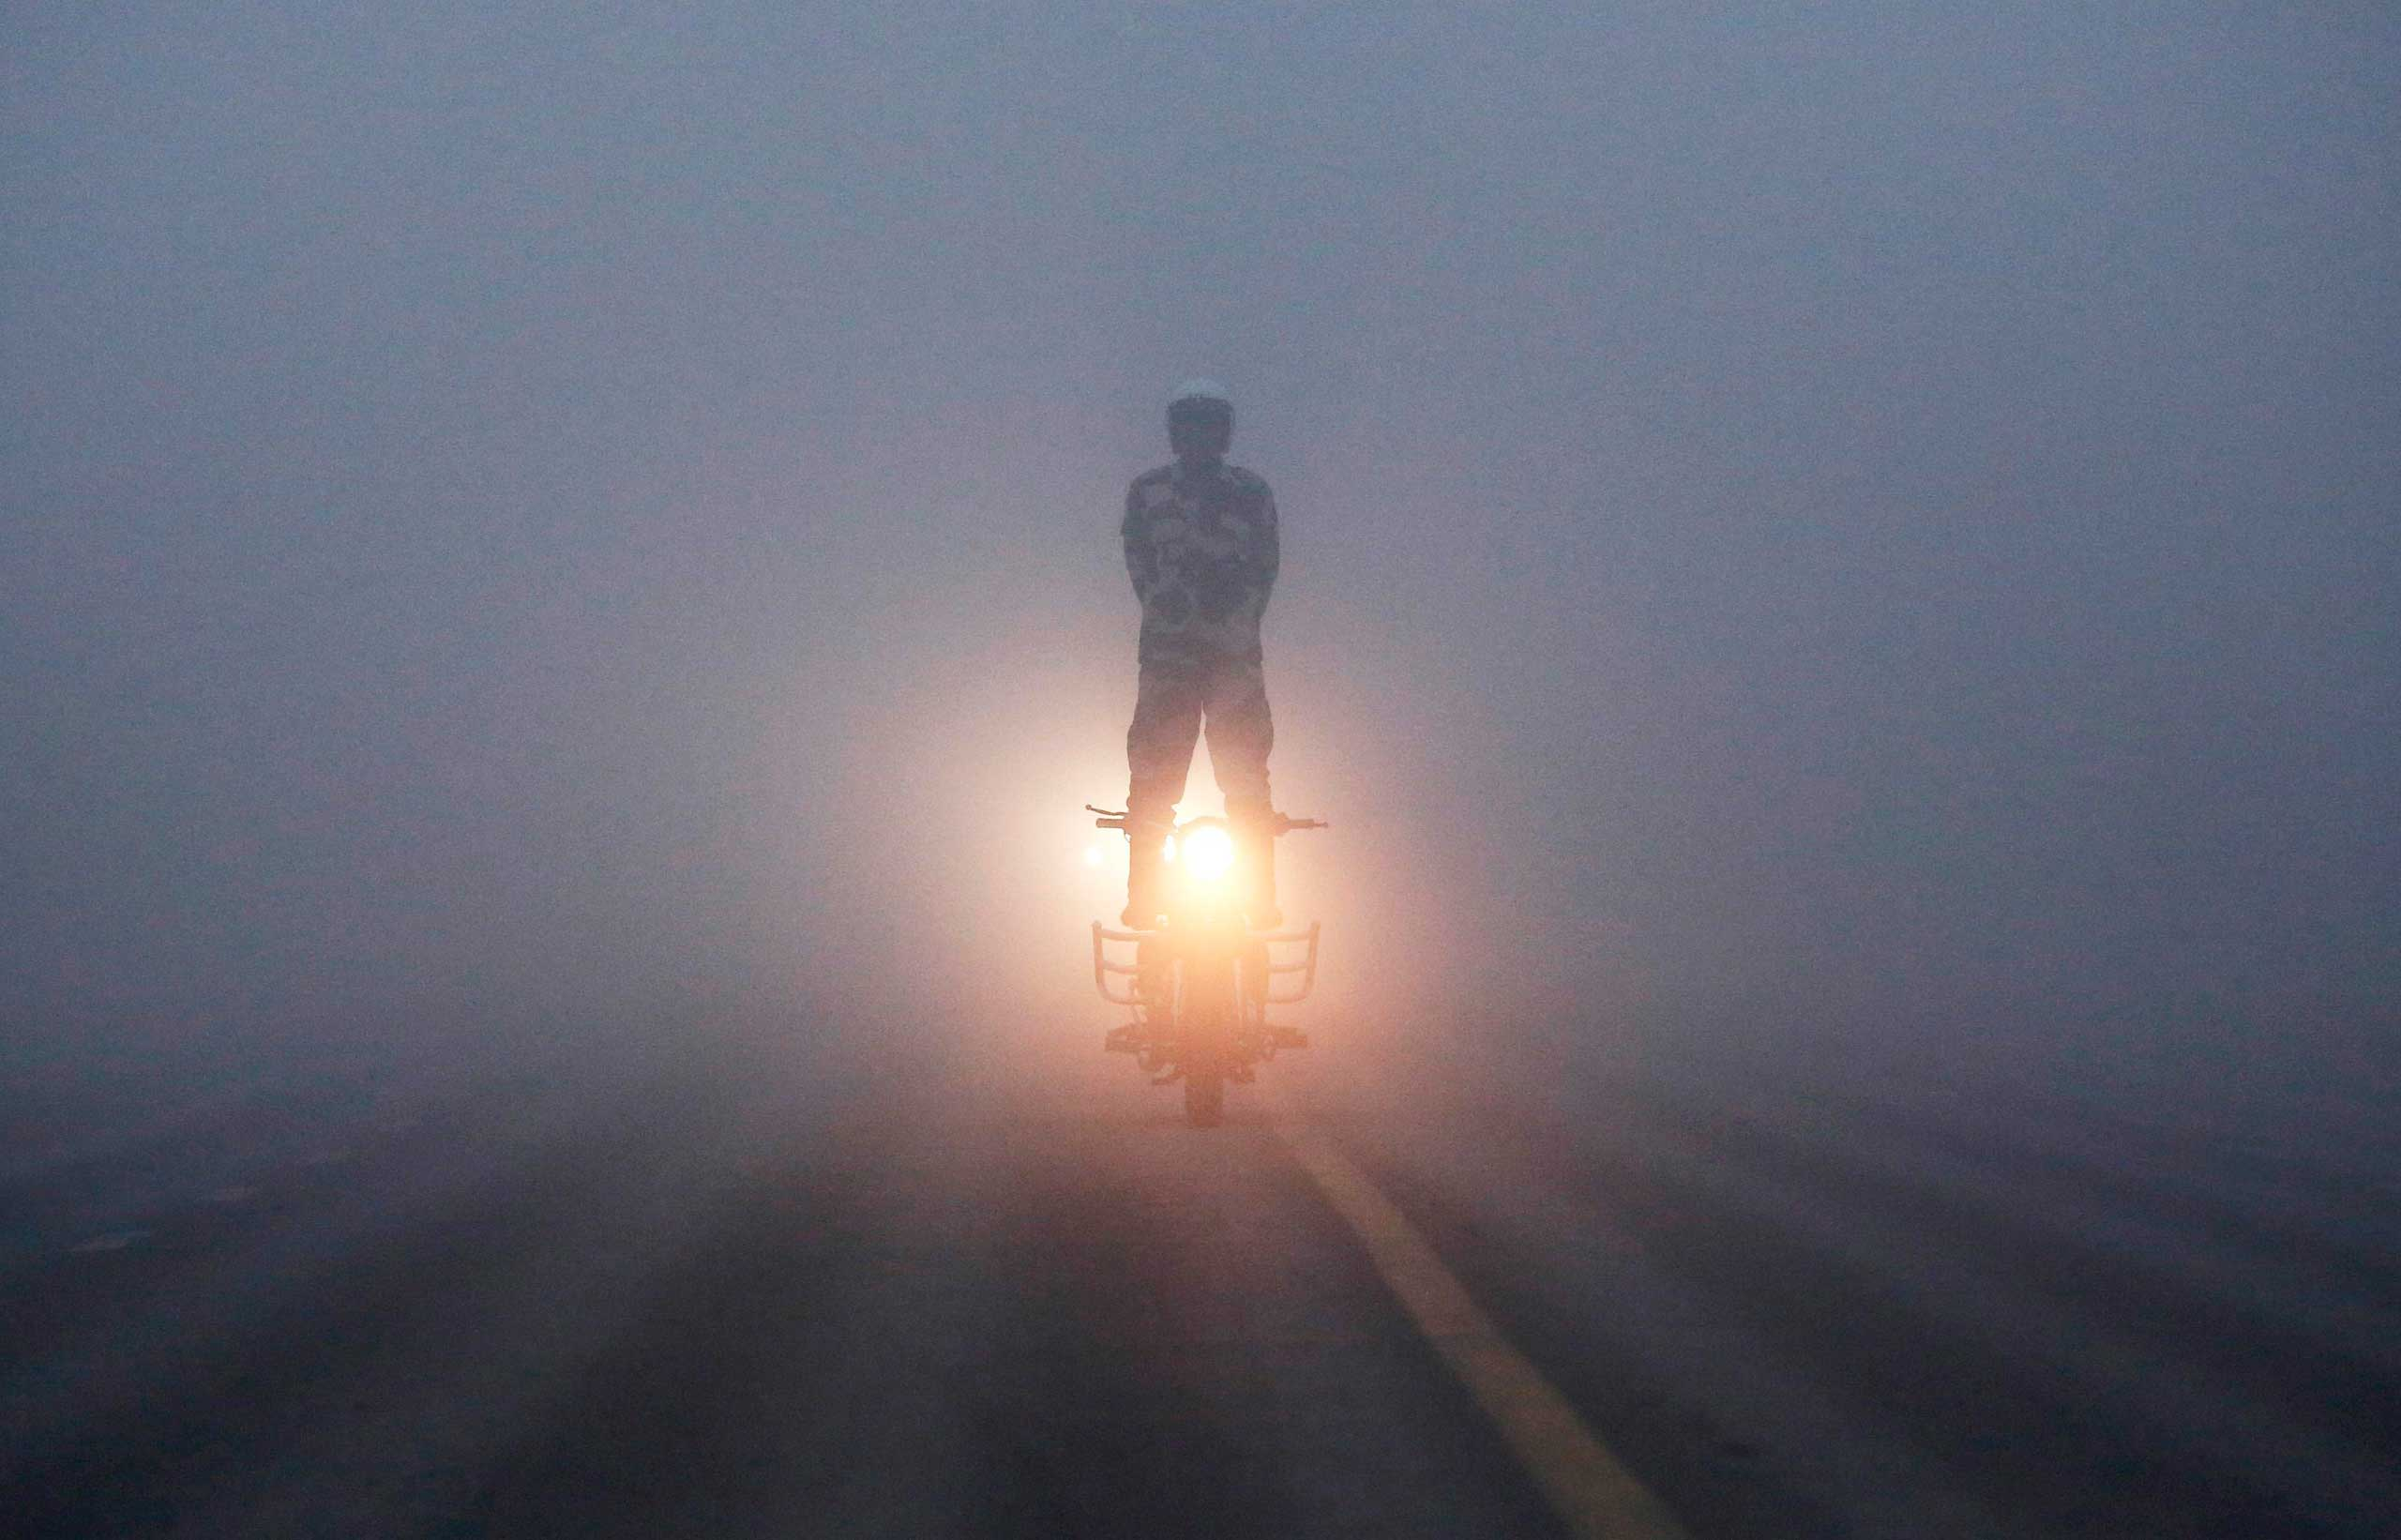 An India's Border Security Force (BSF)  Daredevils  motorcycle rider performs during a rehearsal for the Republic Day parade on a foggy winter morning in New Delhi Jan. 8, 2015.